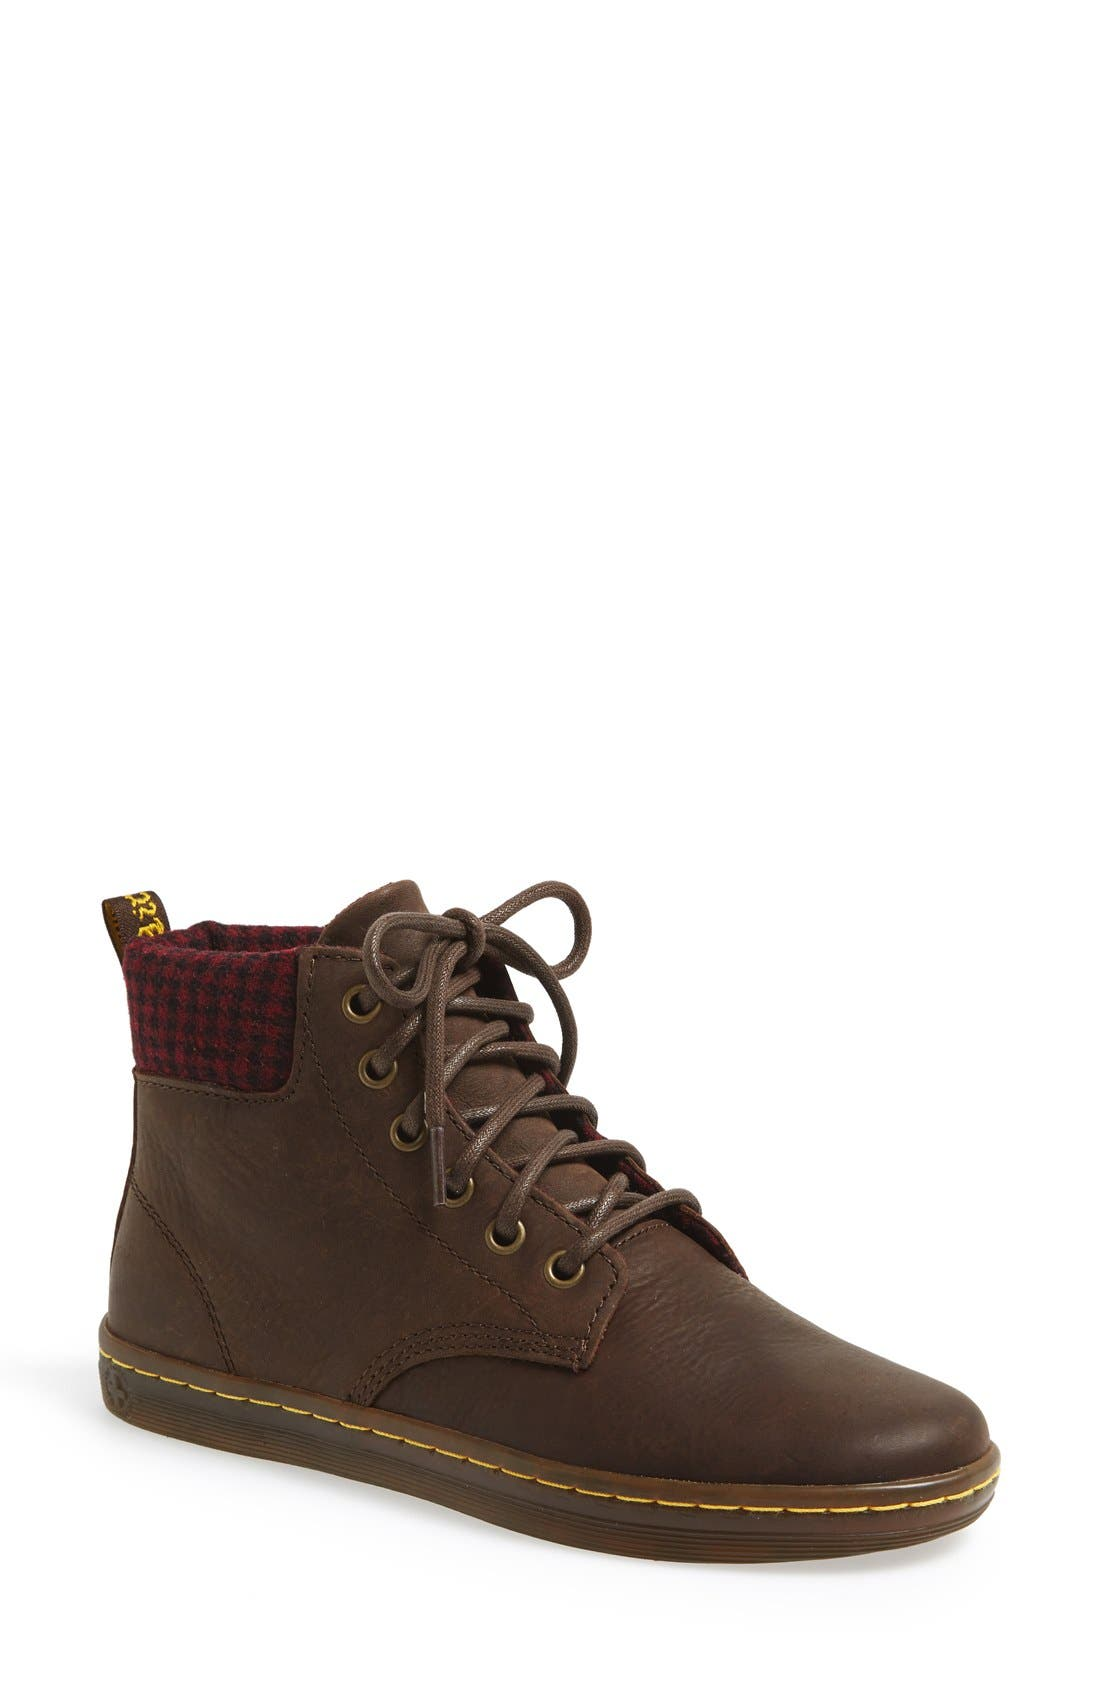 Main Image - Dr. Martens 'Maelly' Boot (Women)